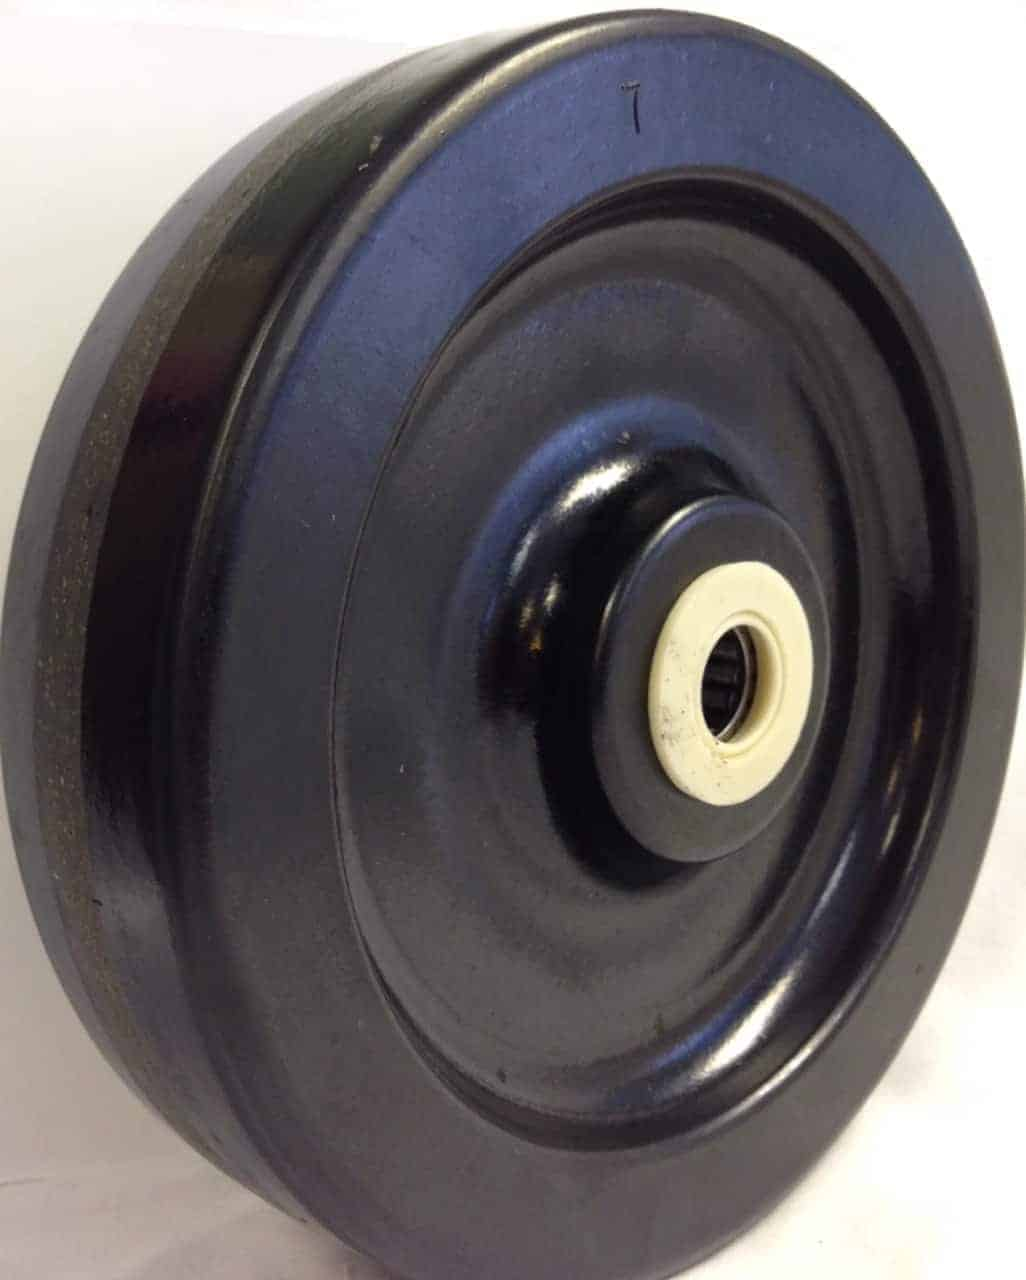 8″ Phenolic Wheel With 3-1/4″ Hub 1-1/4″ Roller Bearing 2000 Lbs Capacity